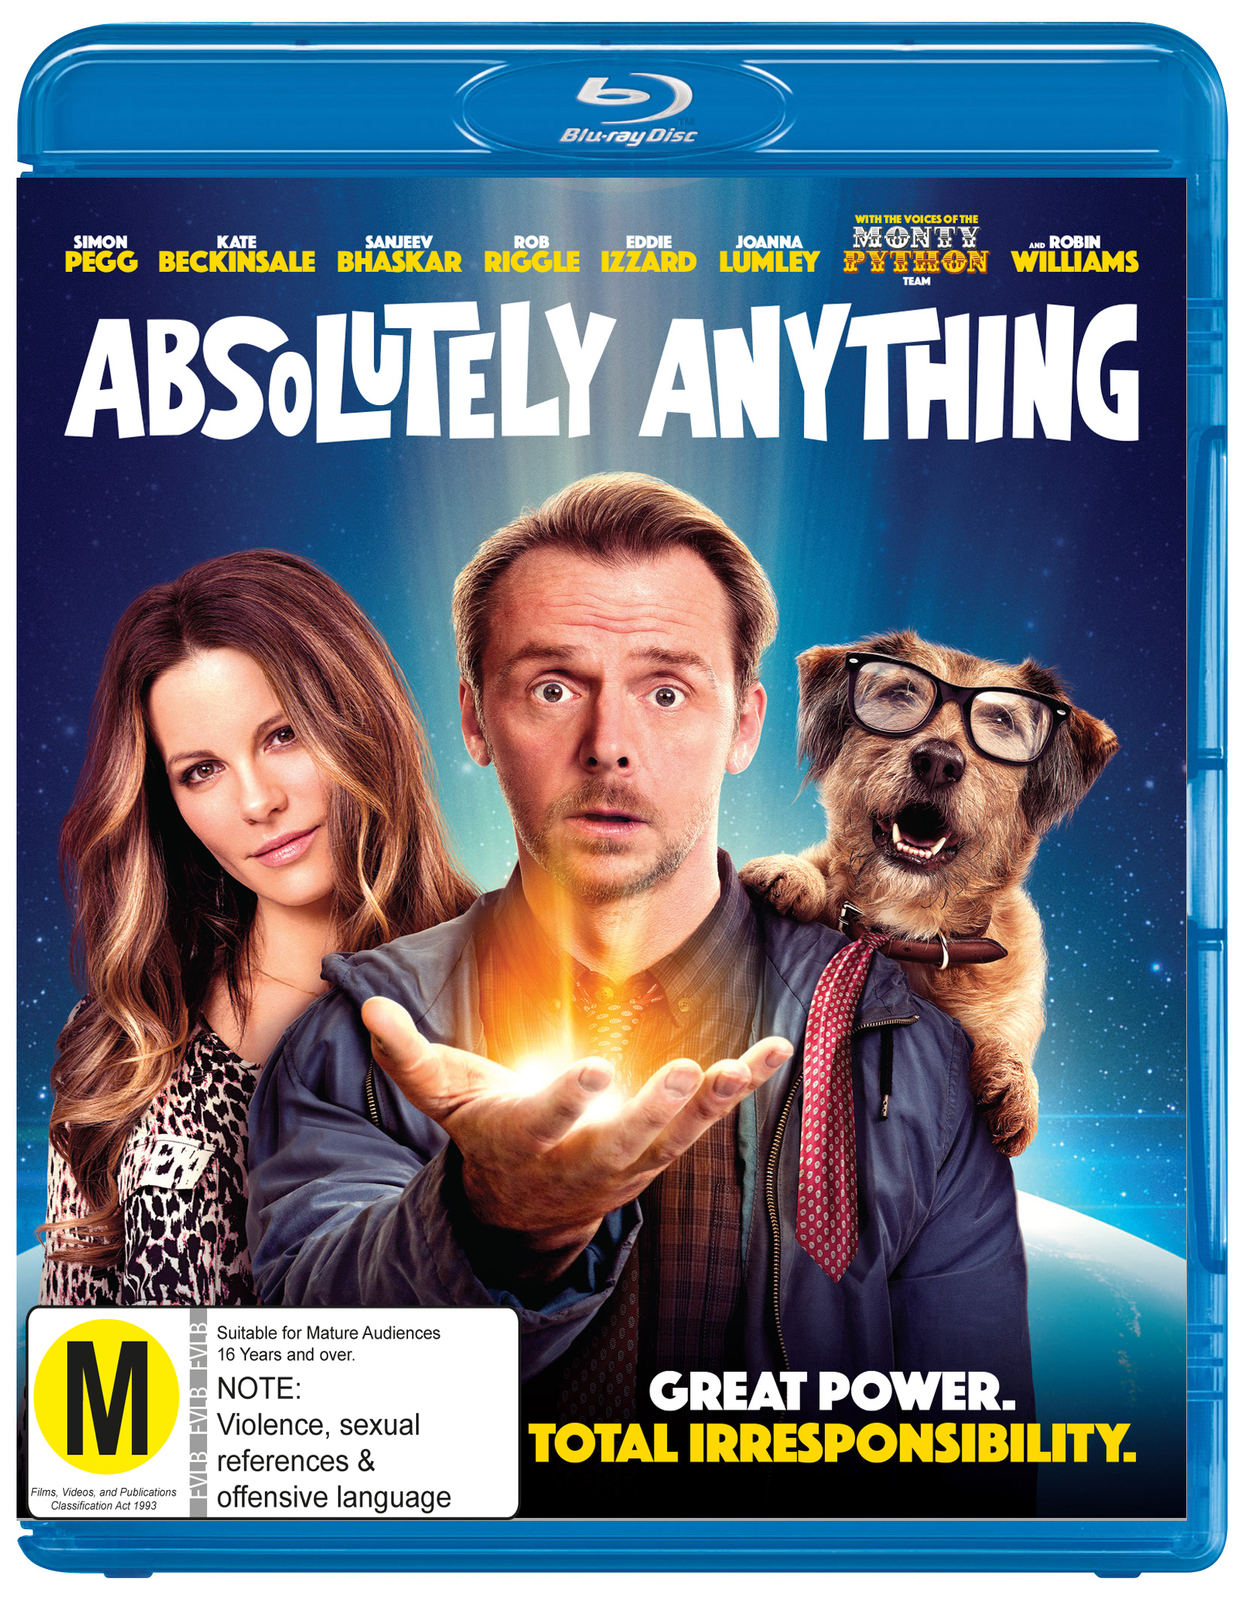 Absolutely Anything on Blu-ray image